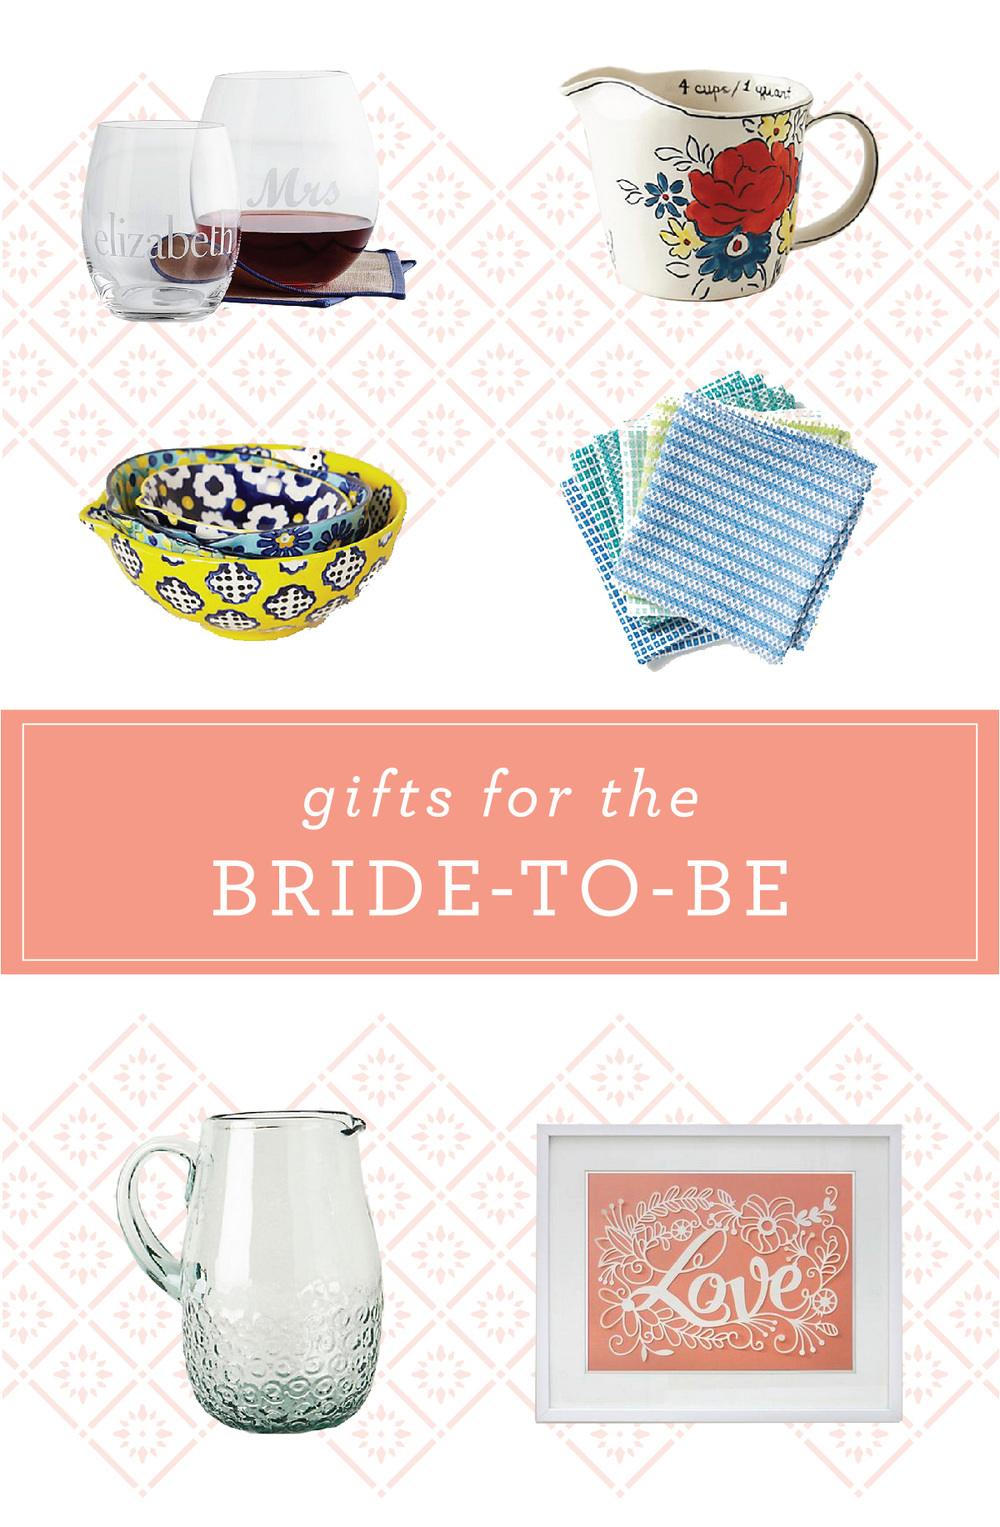 Gifts for the Bride-to-Be | That's Pretty Ace